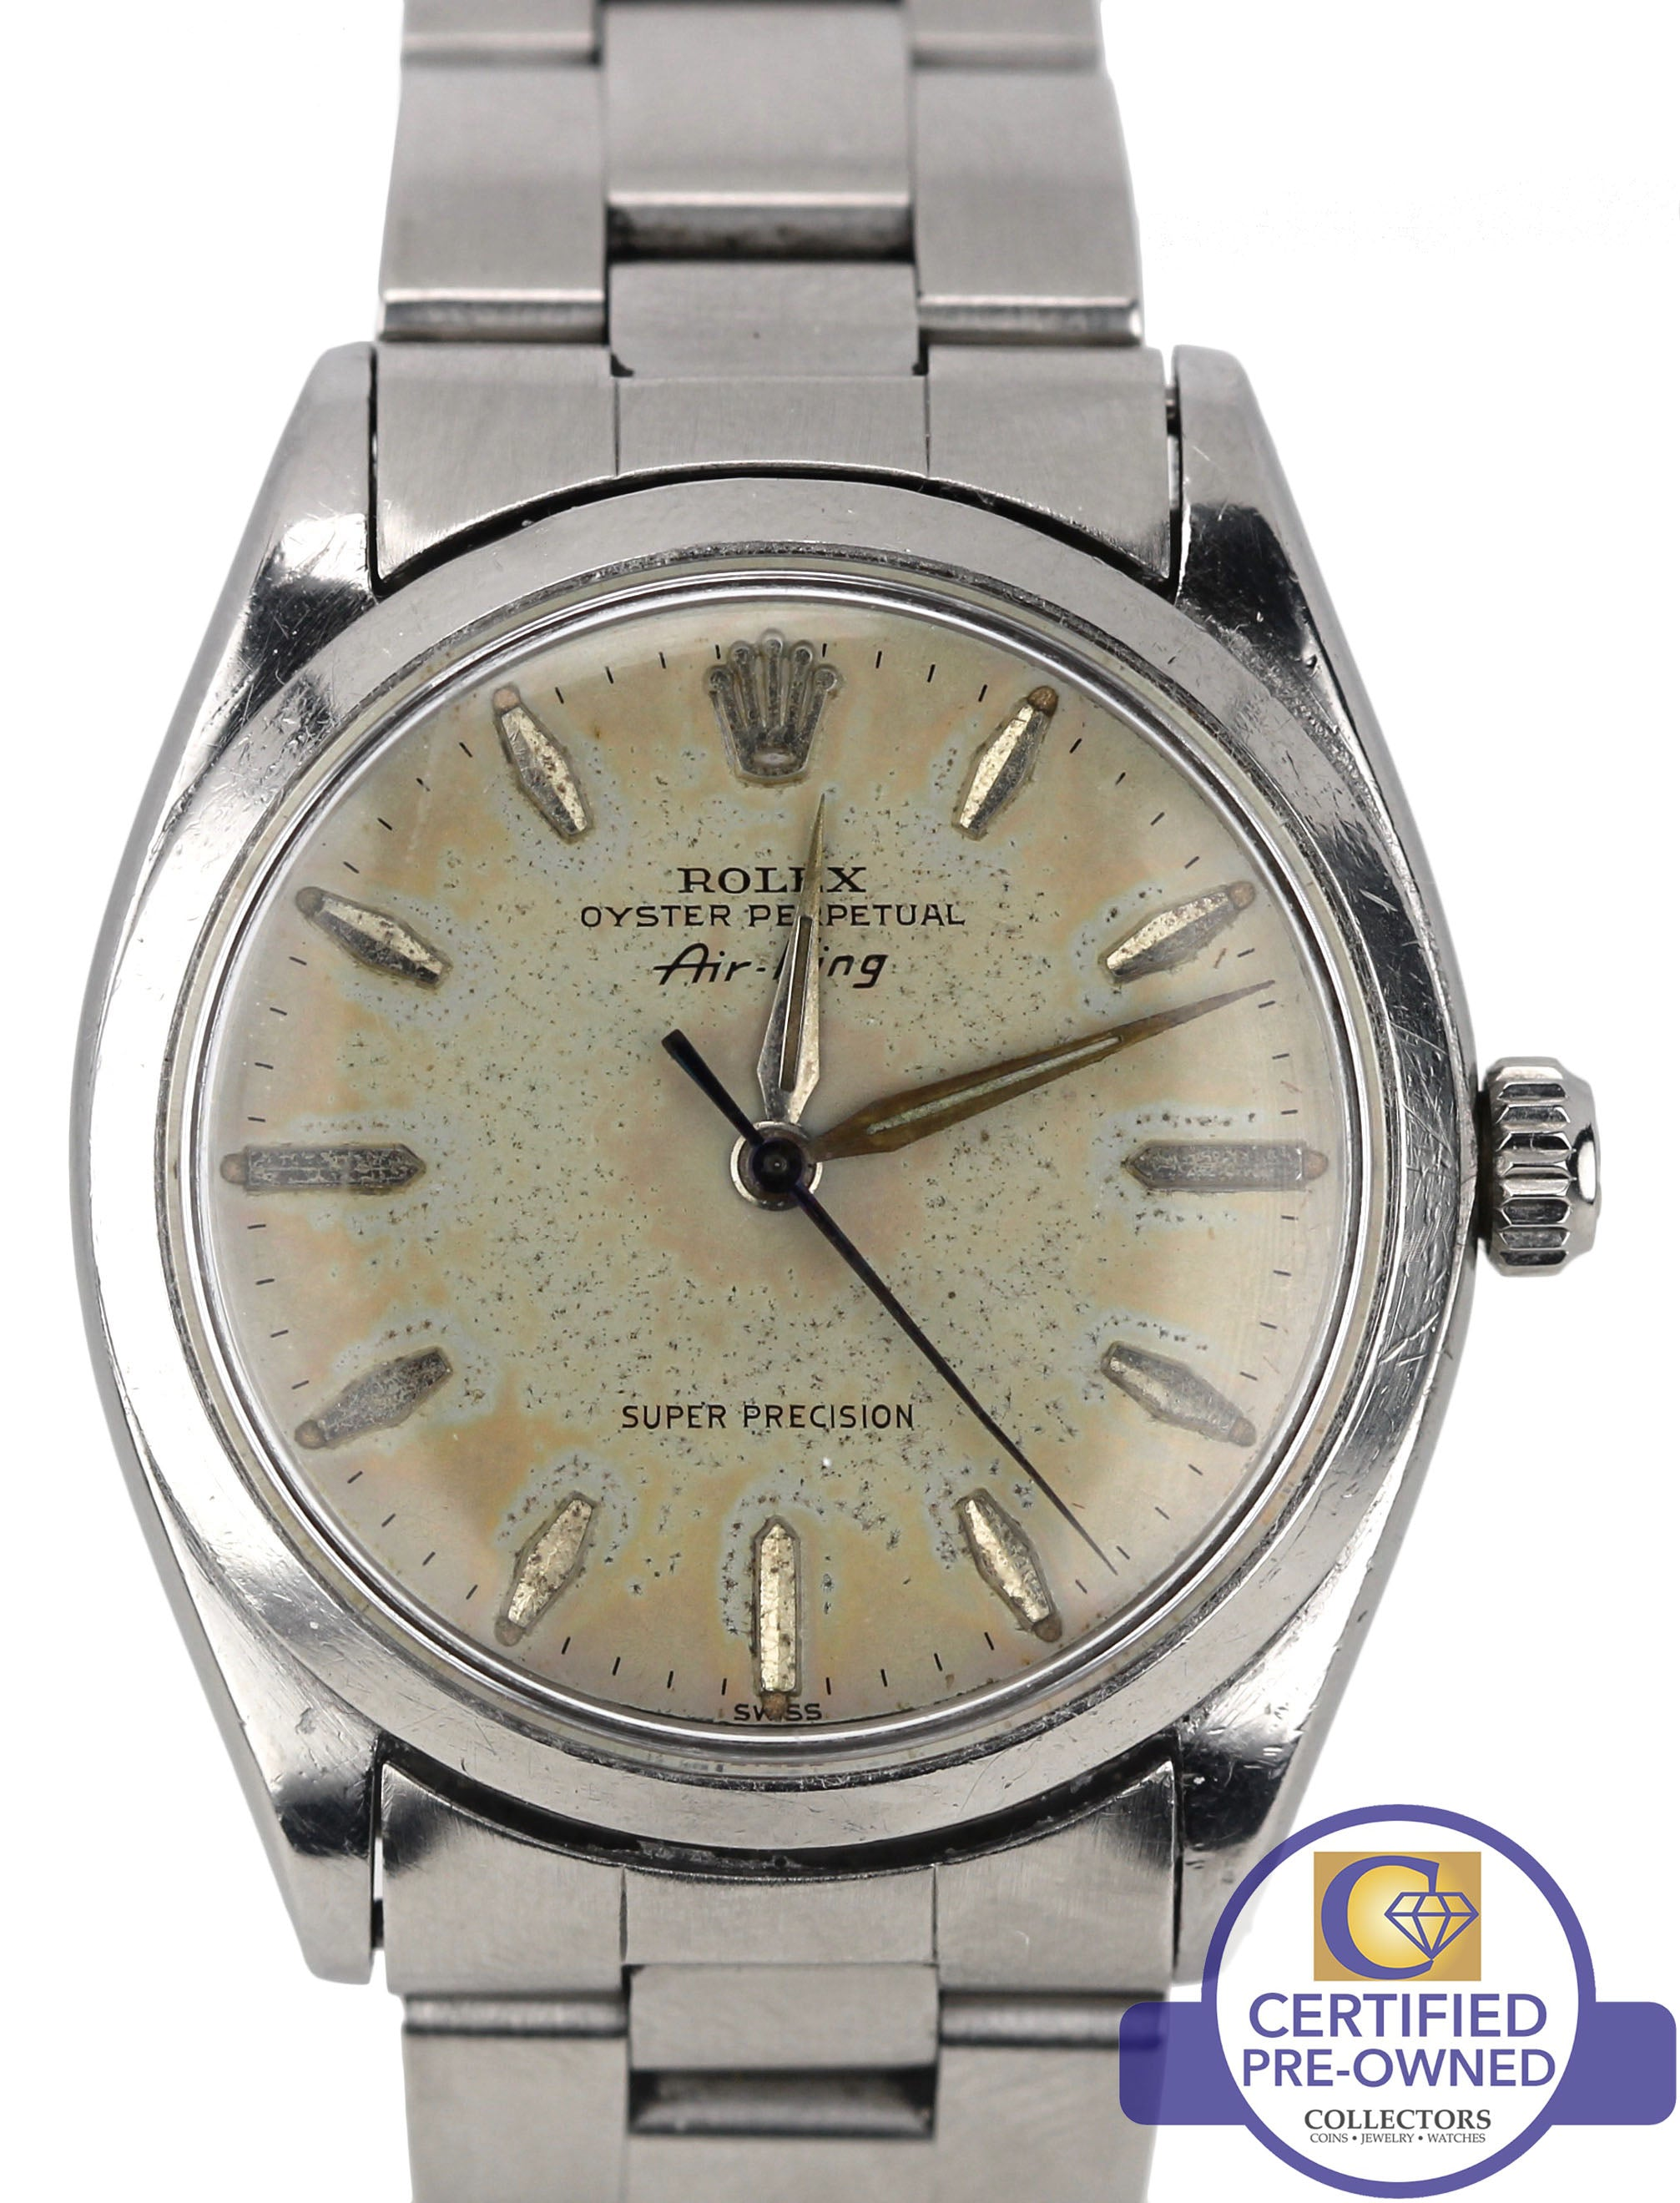 Rolex Oyster Perpetual Air King Silver Patina Stainless 5500 34mm Watch 14000